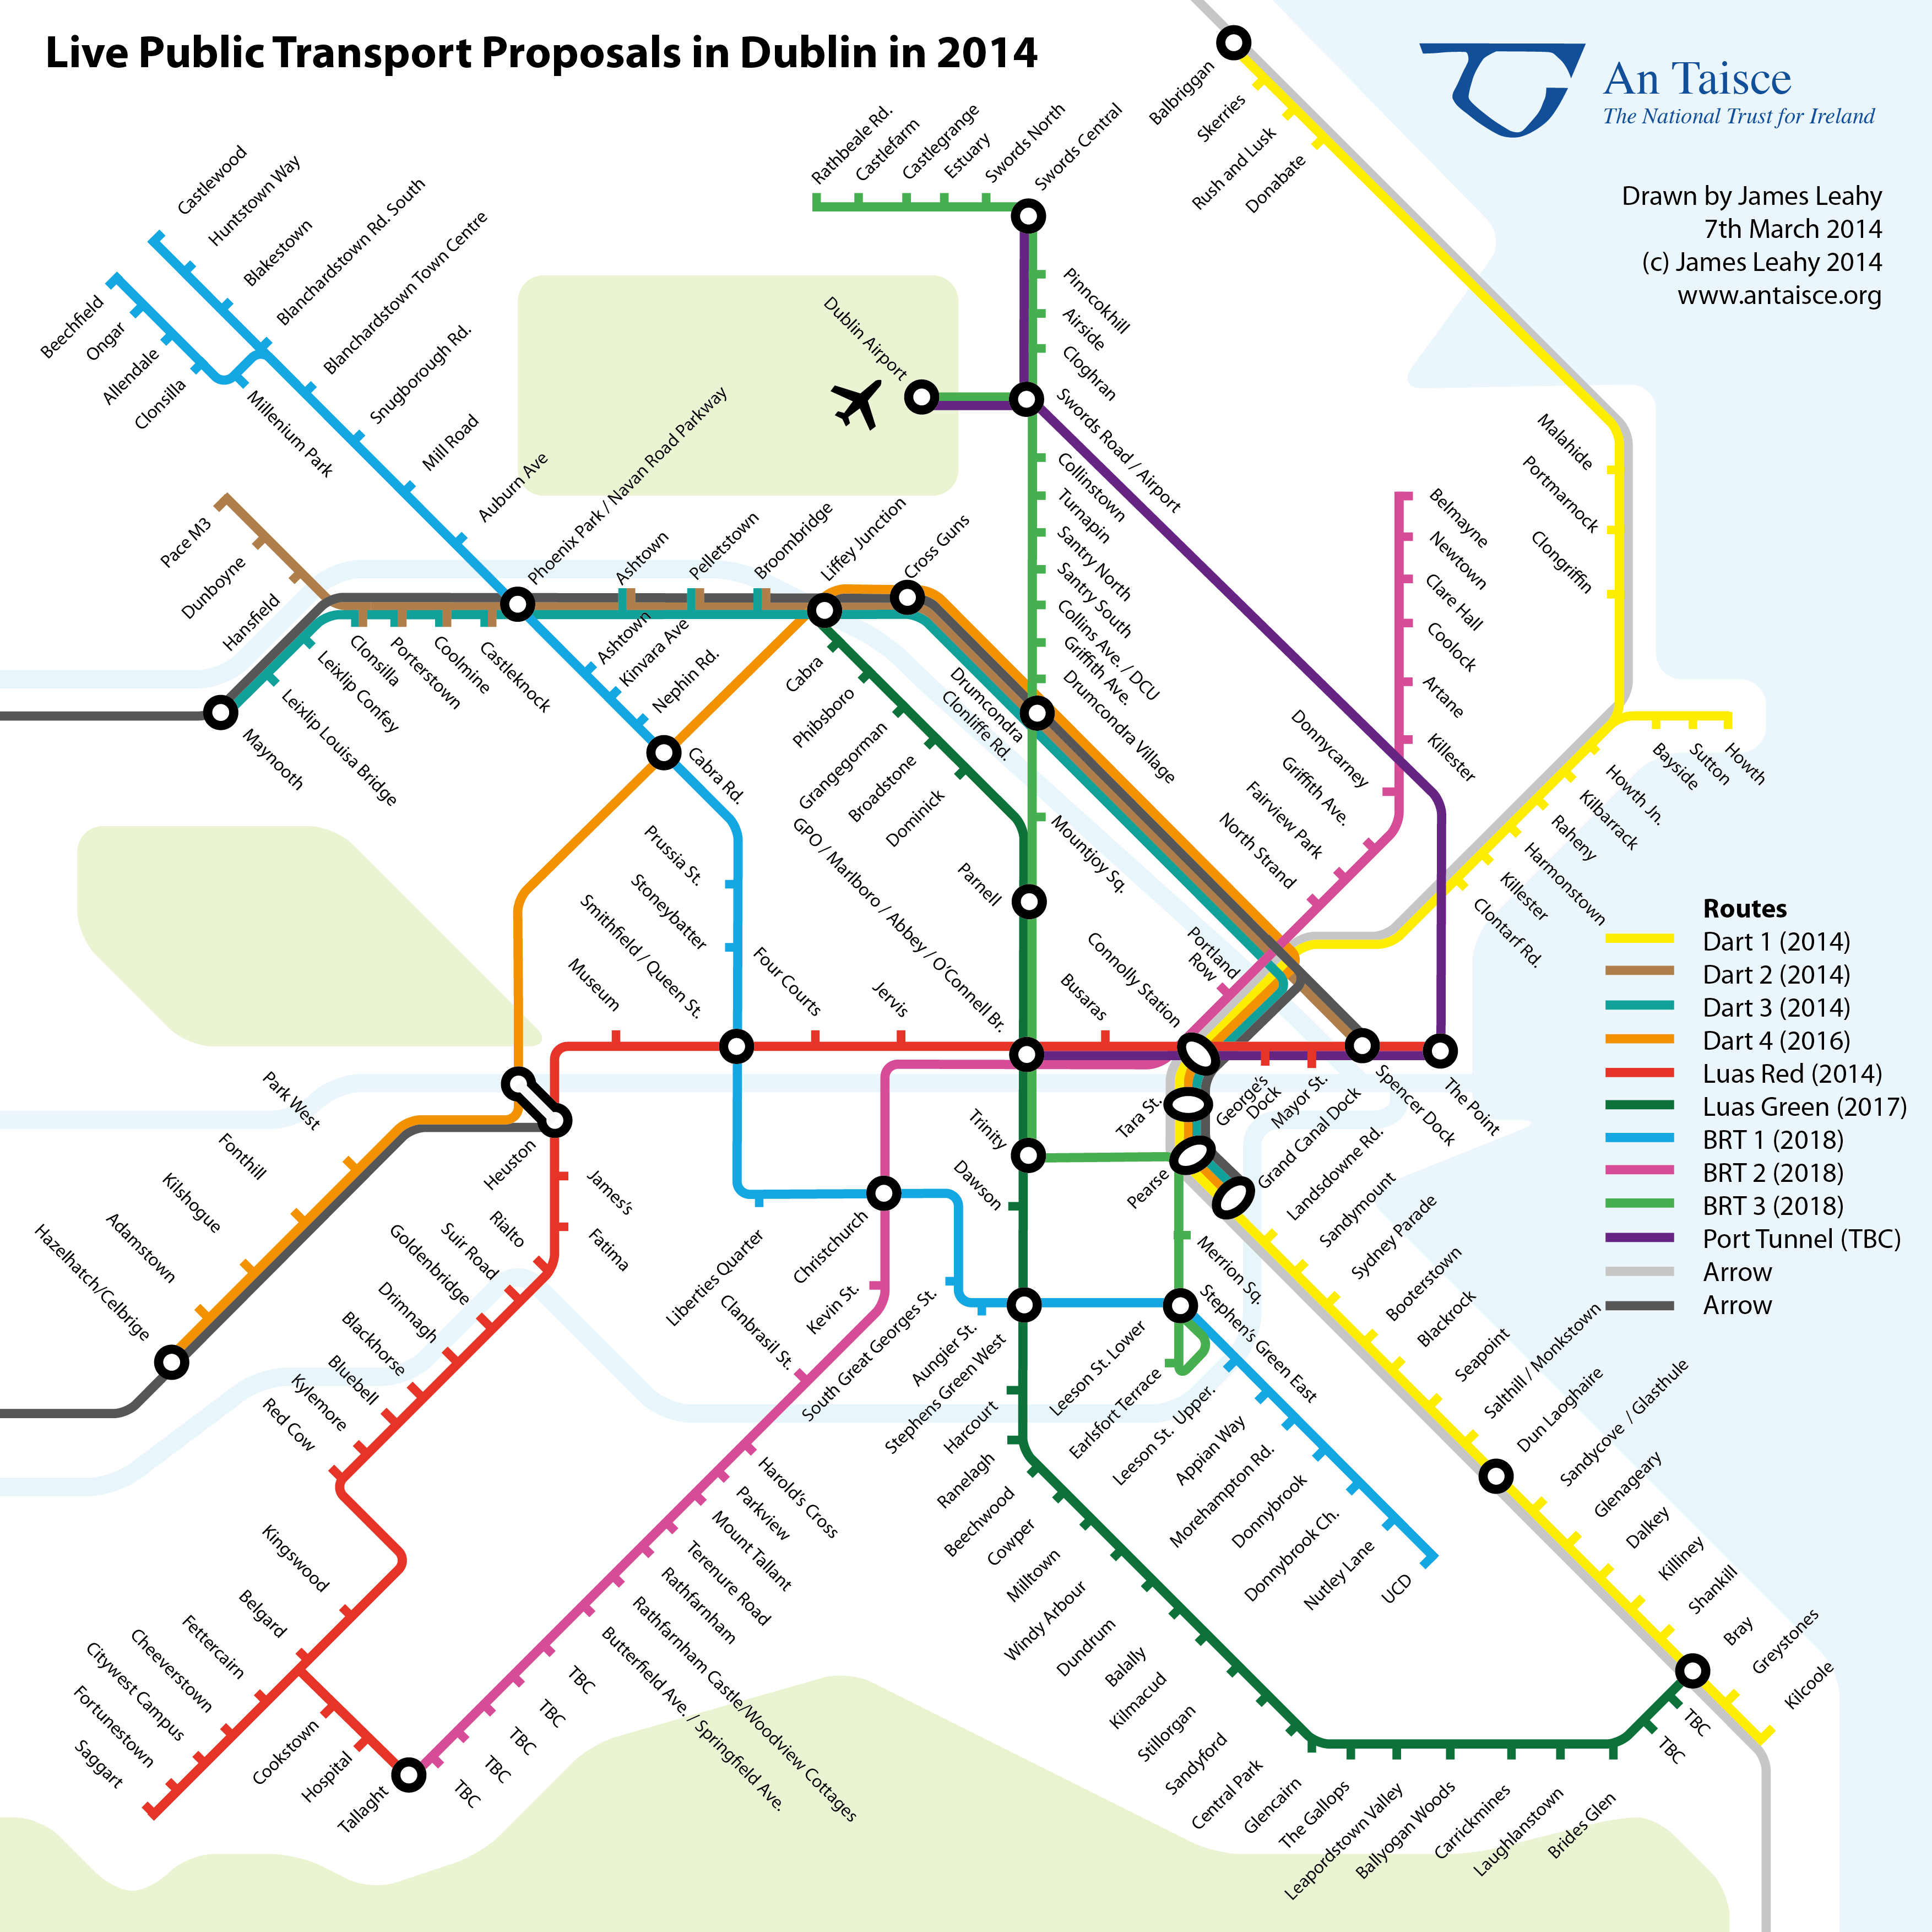 London Light Rail Map.London Tube Style Map Shows How Dublin Public Transport Will Link Up